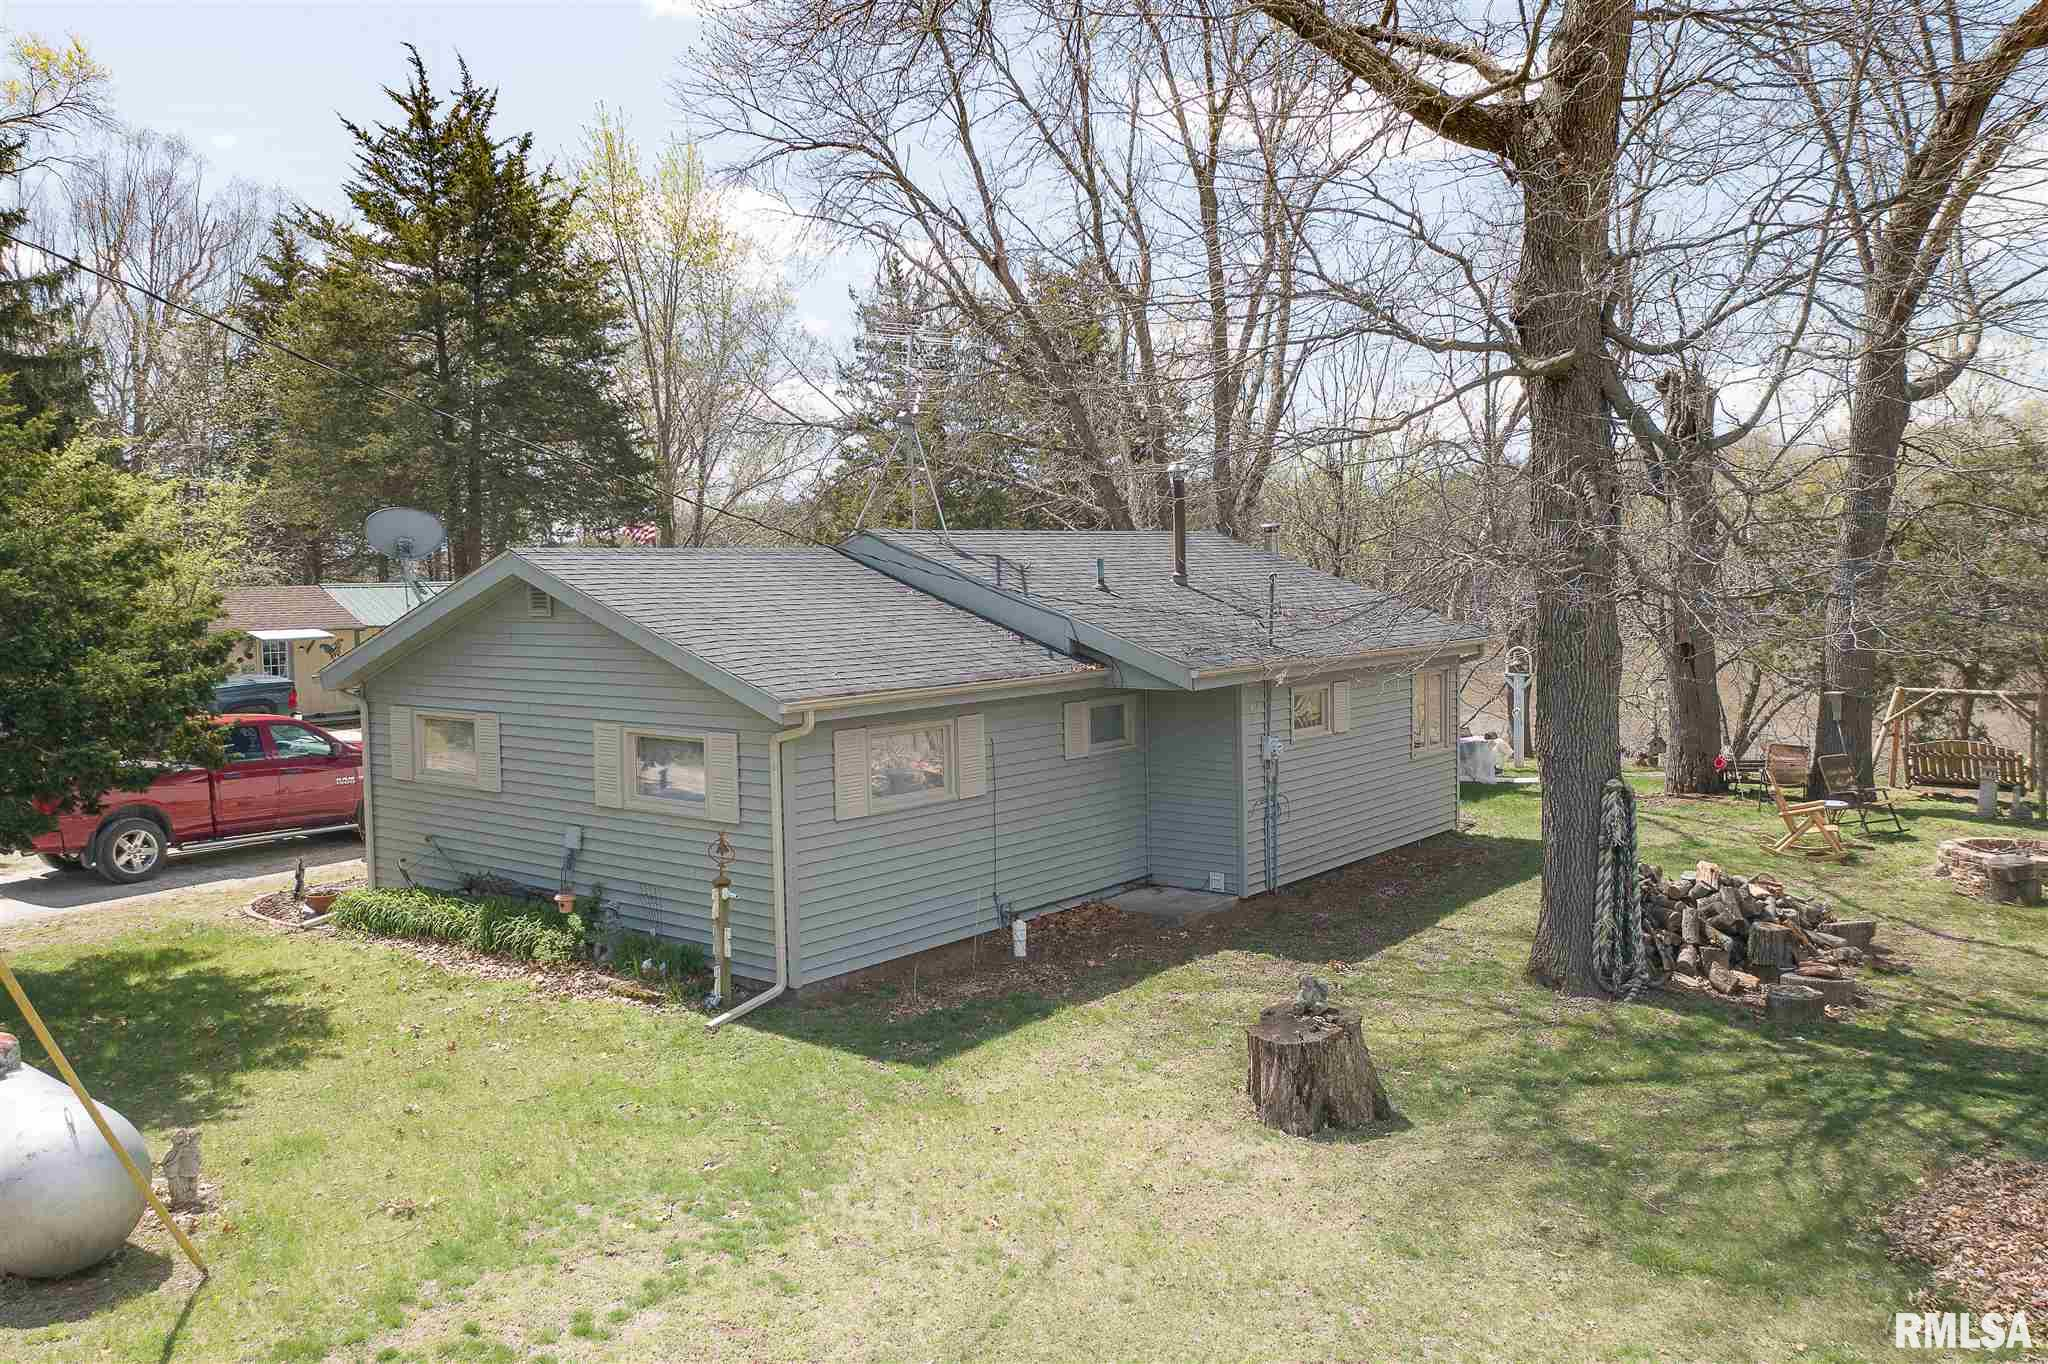 38 WILLITS Property Photo - Keithsburg, IL real estate listing